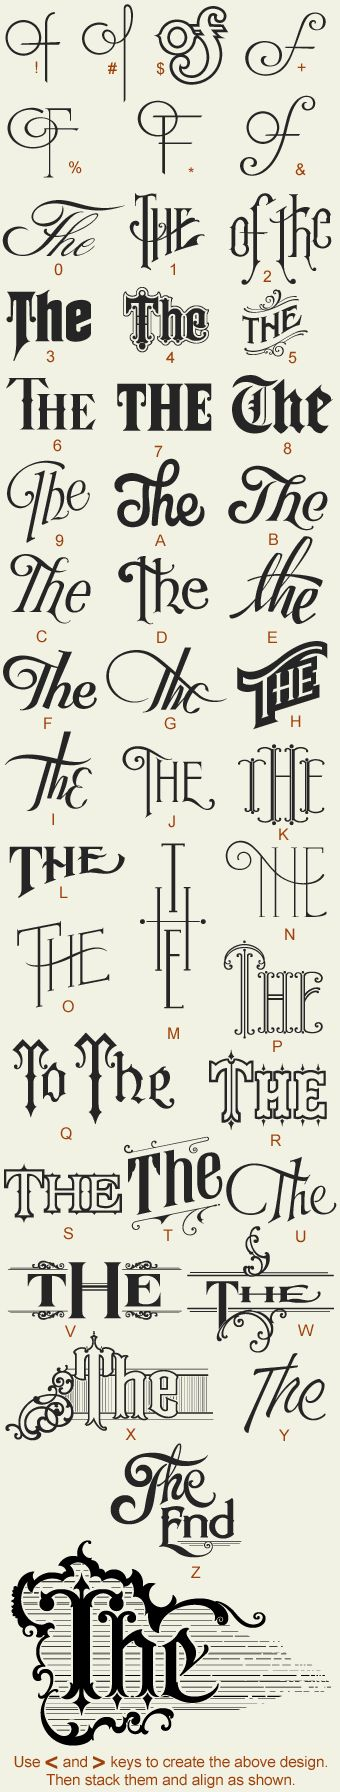 """LHF Noel's Thes by Noel Weber & Dave Parr Features 35 variations of the word """"The"""" (and a few """"of""""s thrown in for good measure). Each letter generates a different design. Download printable keyguide here.  Add To Cart $52.00"""